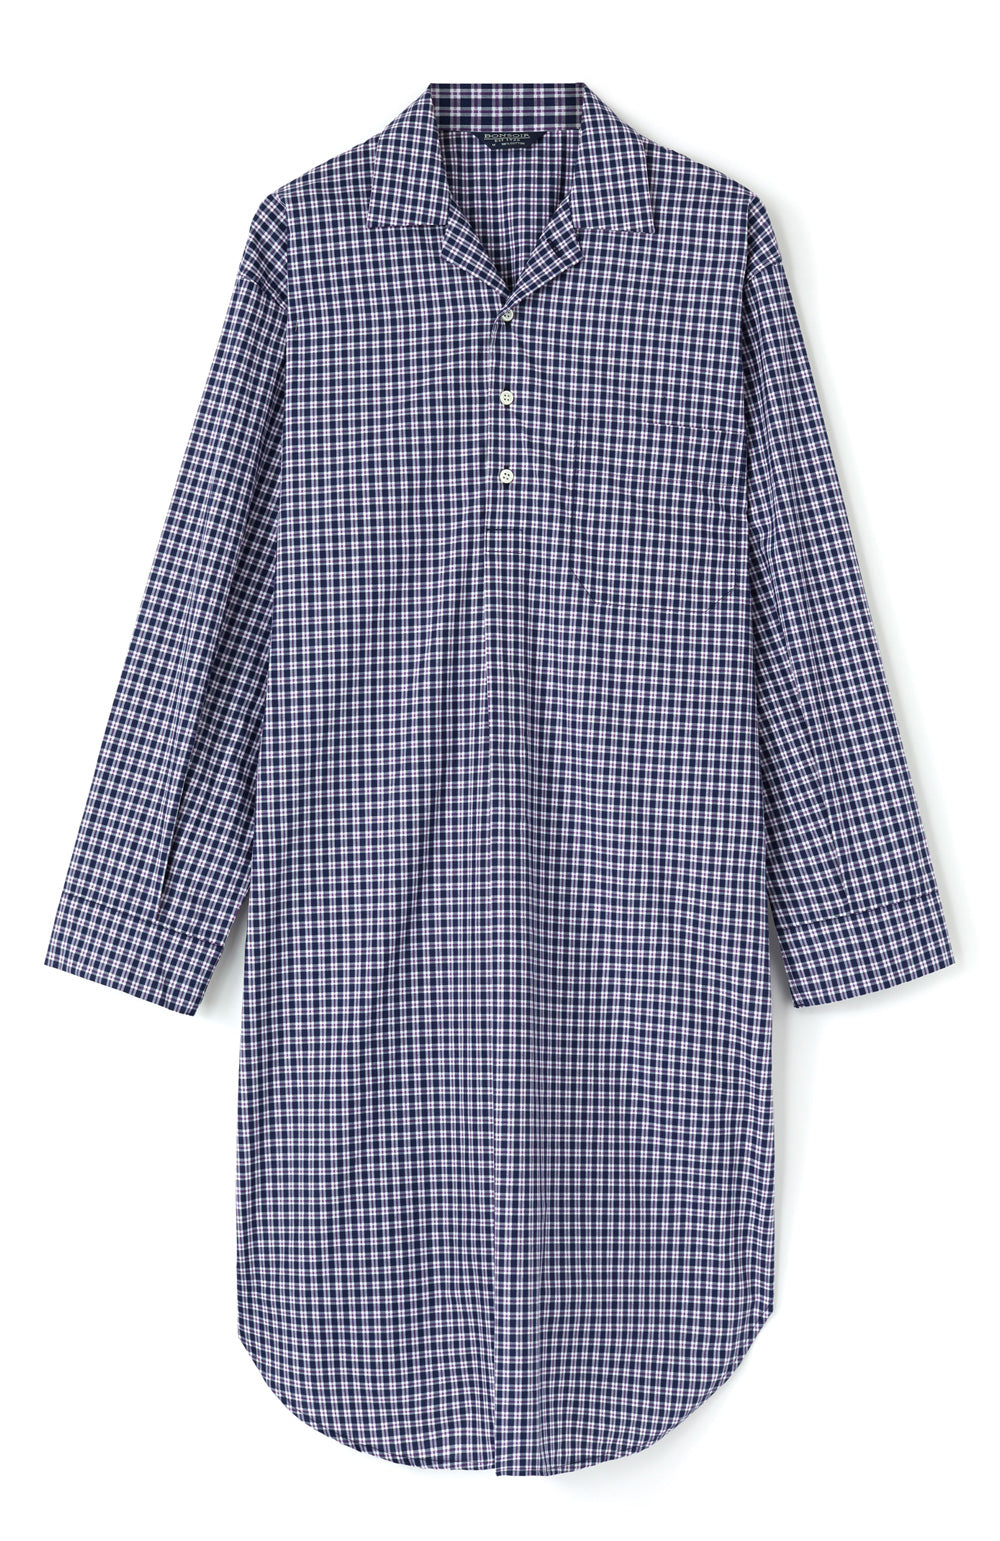 Men's Classic Nightshirt in A267 | Bonsoir of London